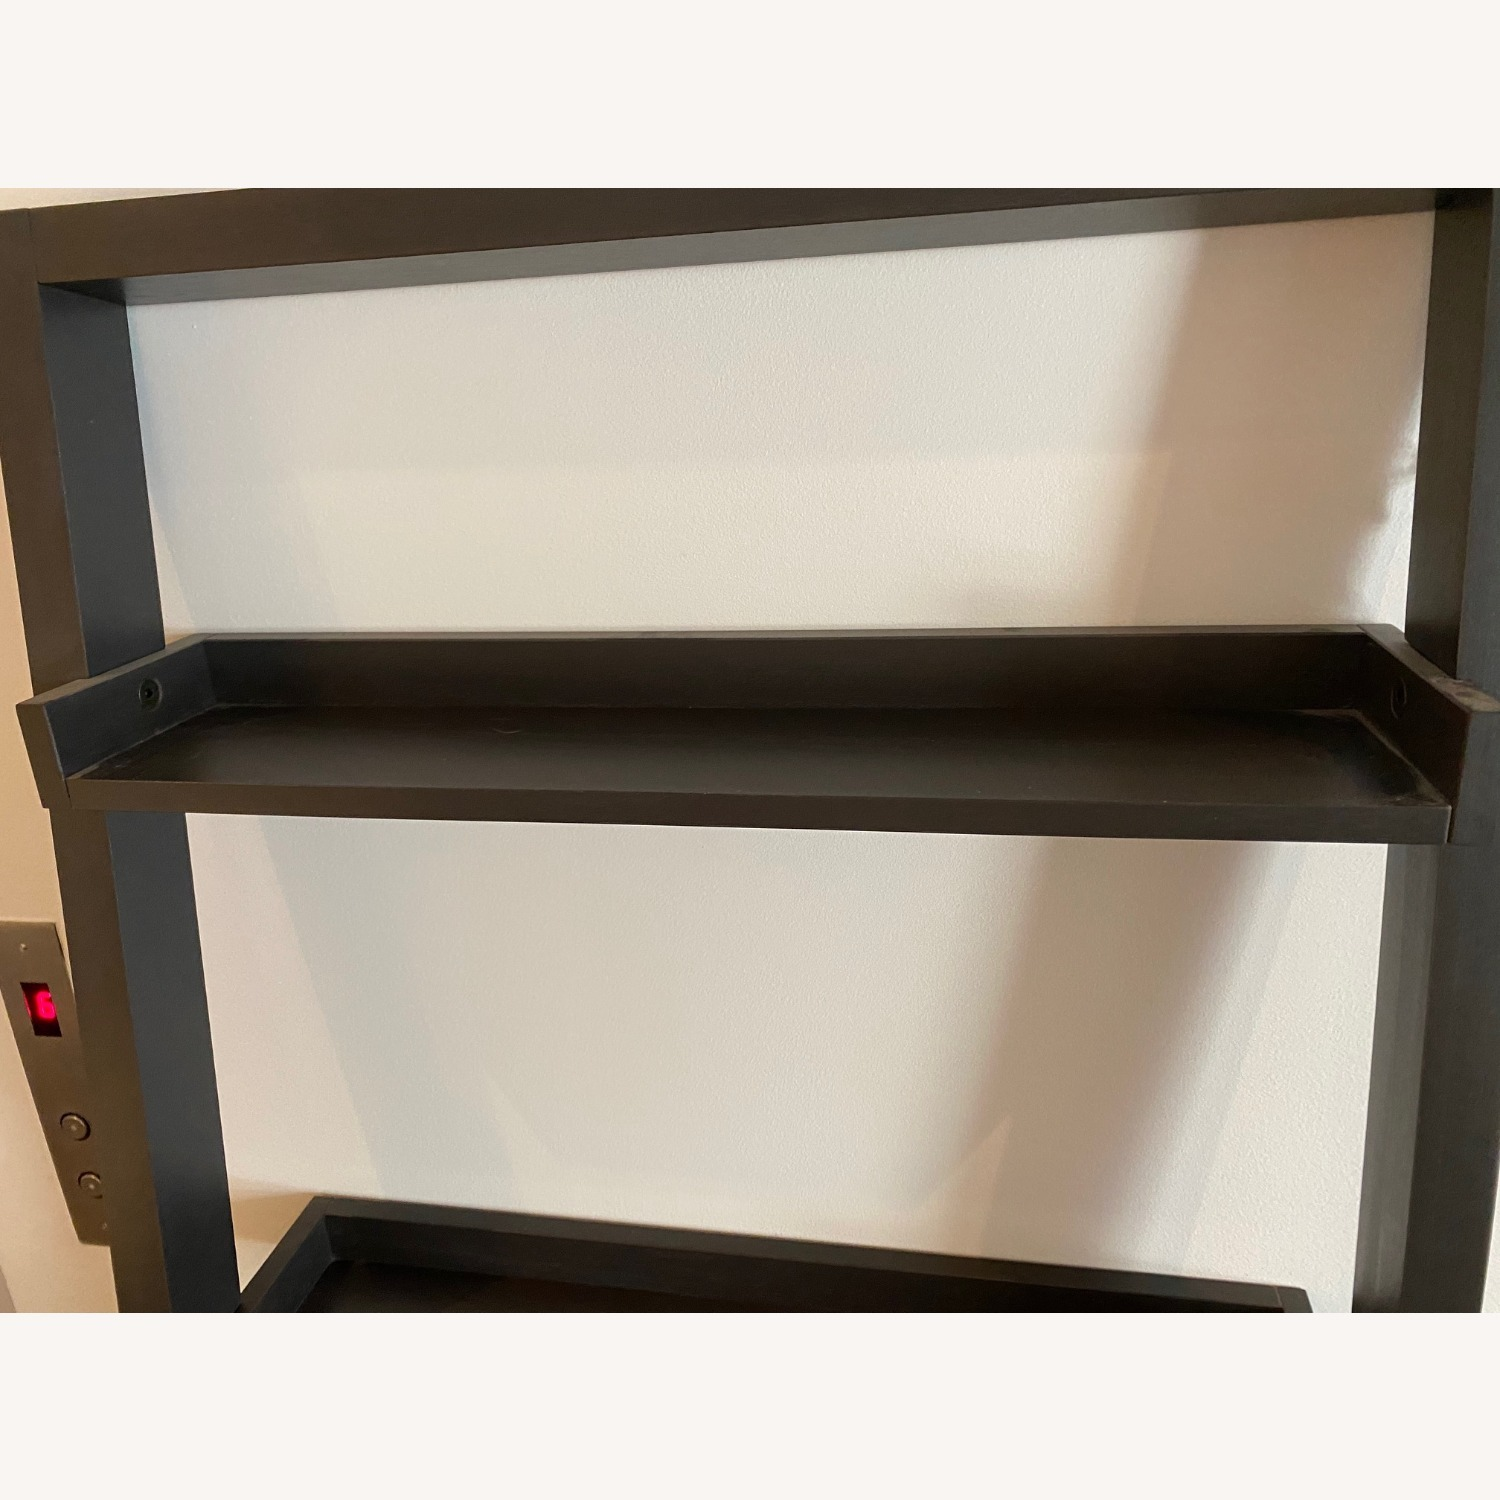 Crate and Barrel Sloane Leaning Bookcase - image-9